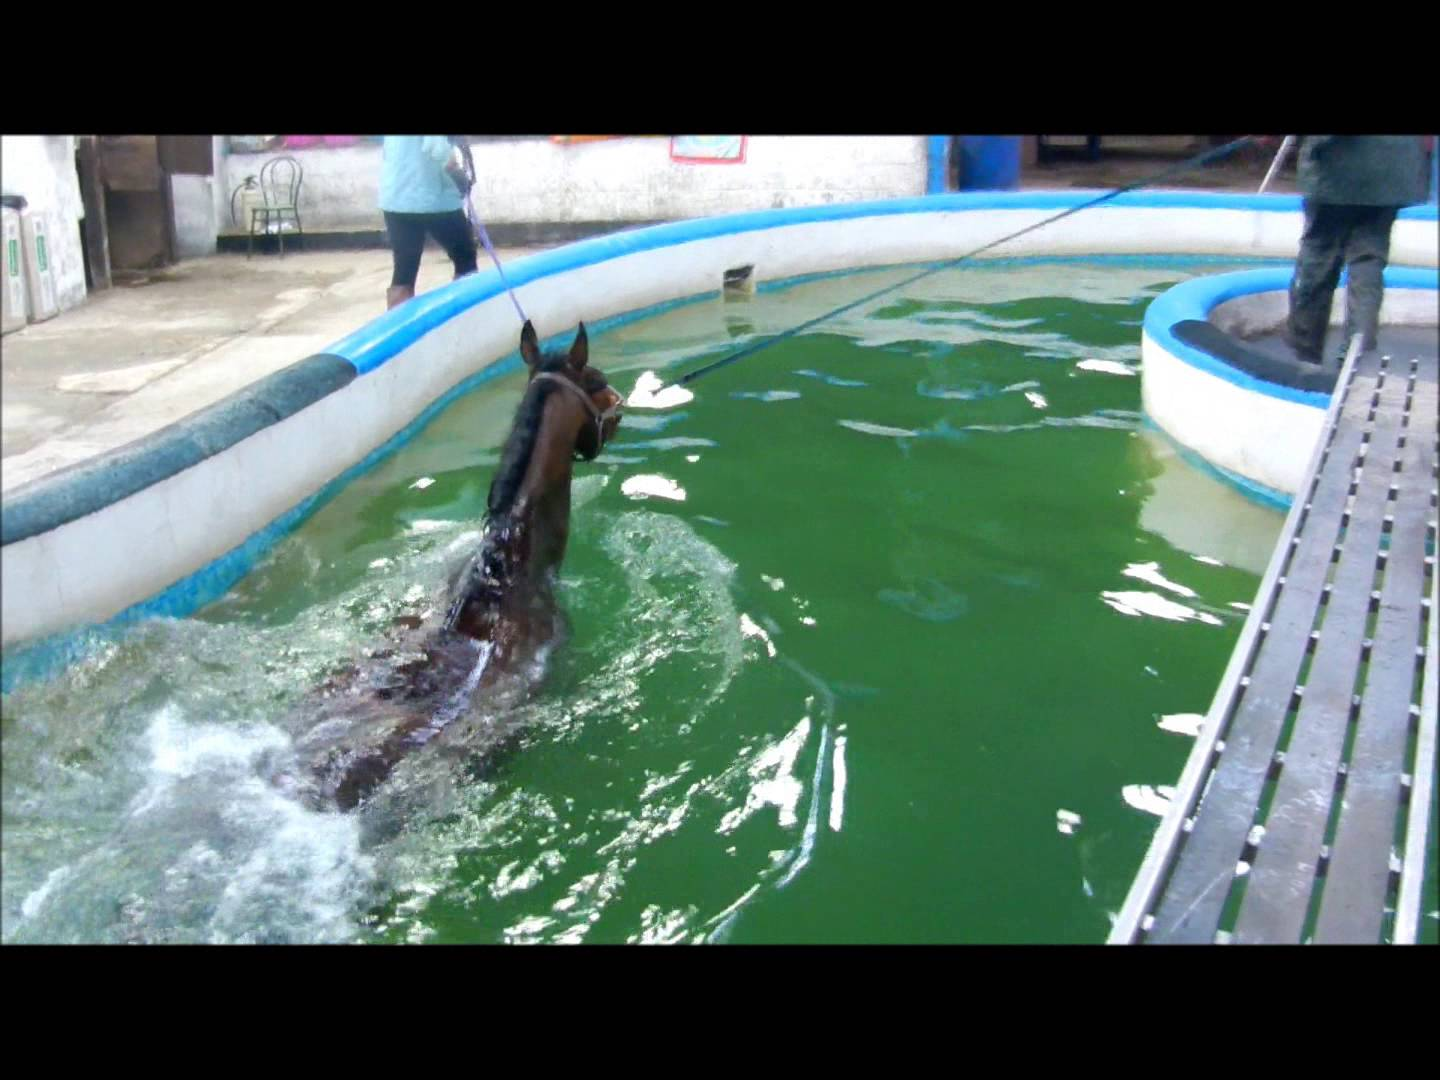 Rehabilitation of the Injured Horse